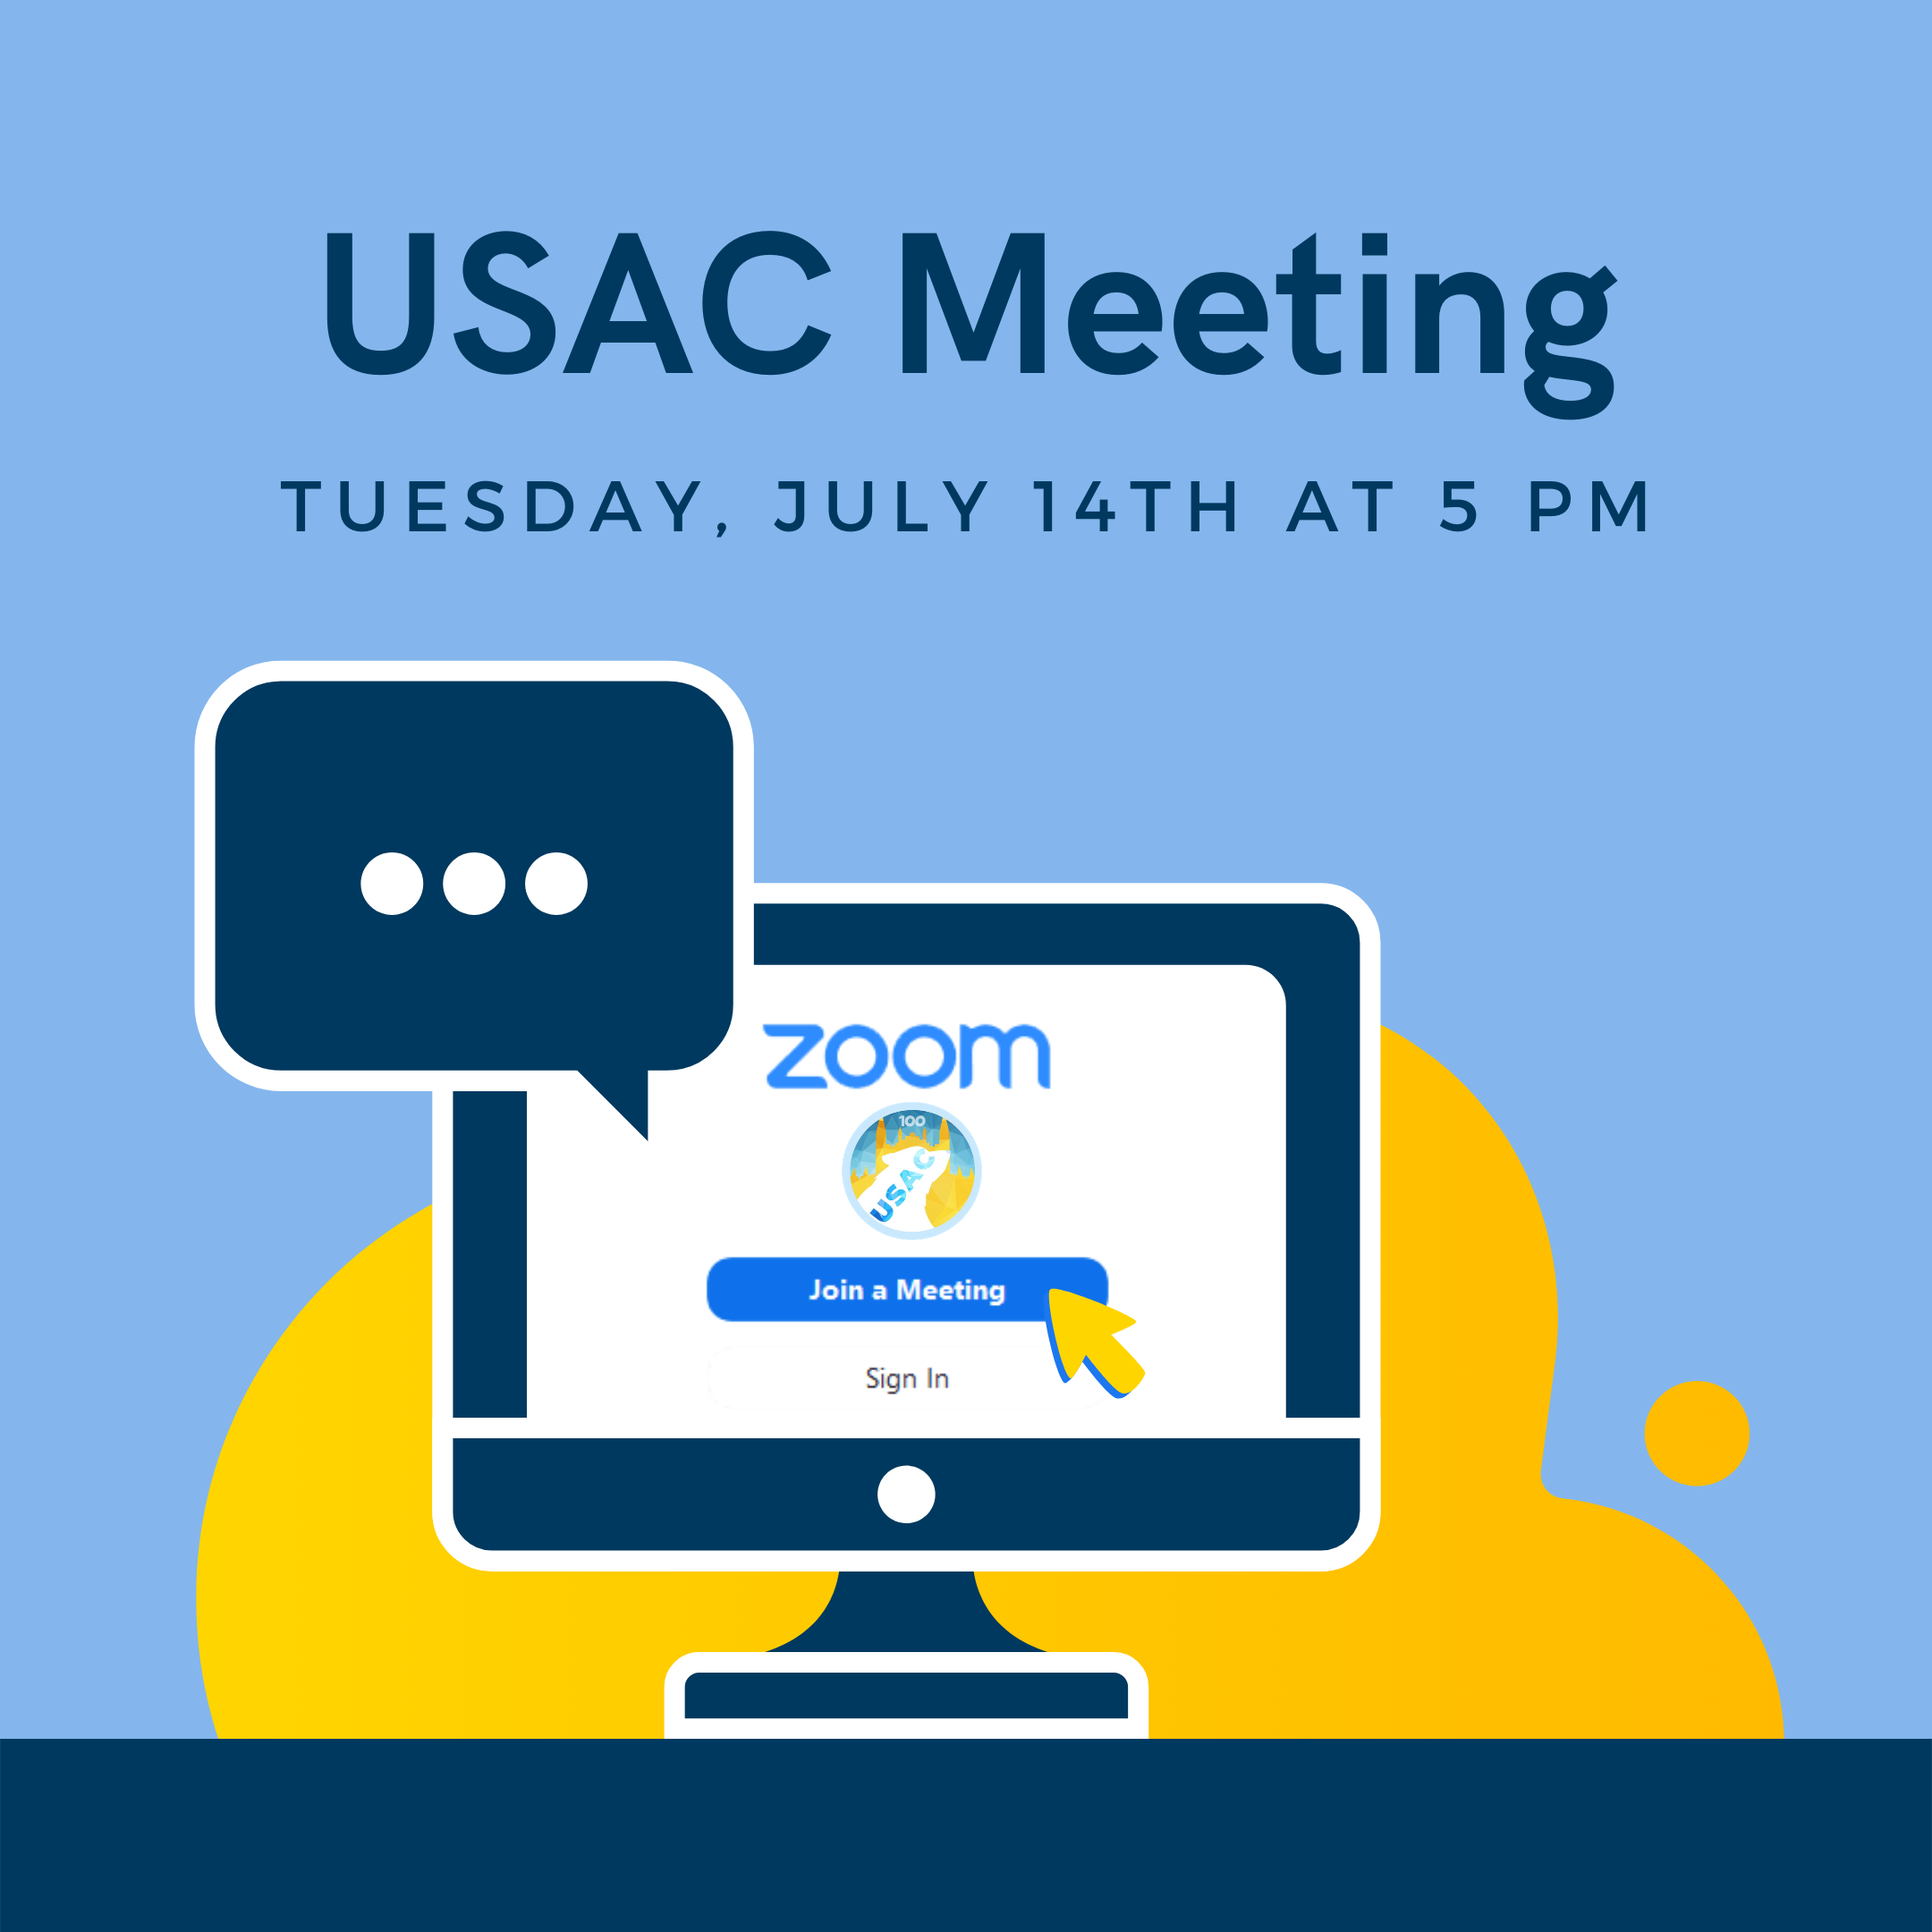 USAC Meeting on Tuesday, July 14th at 5:00 PM PST